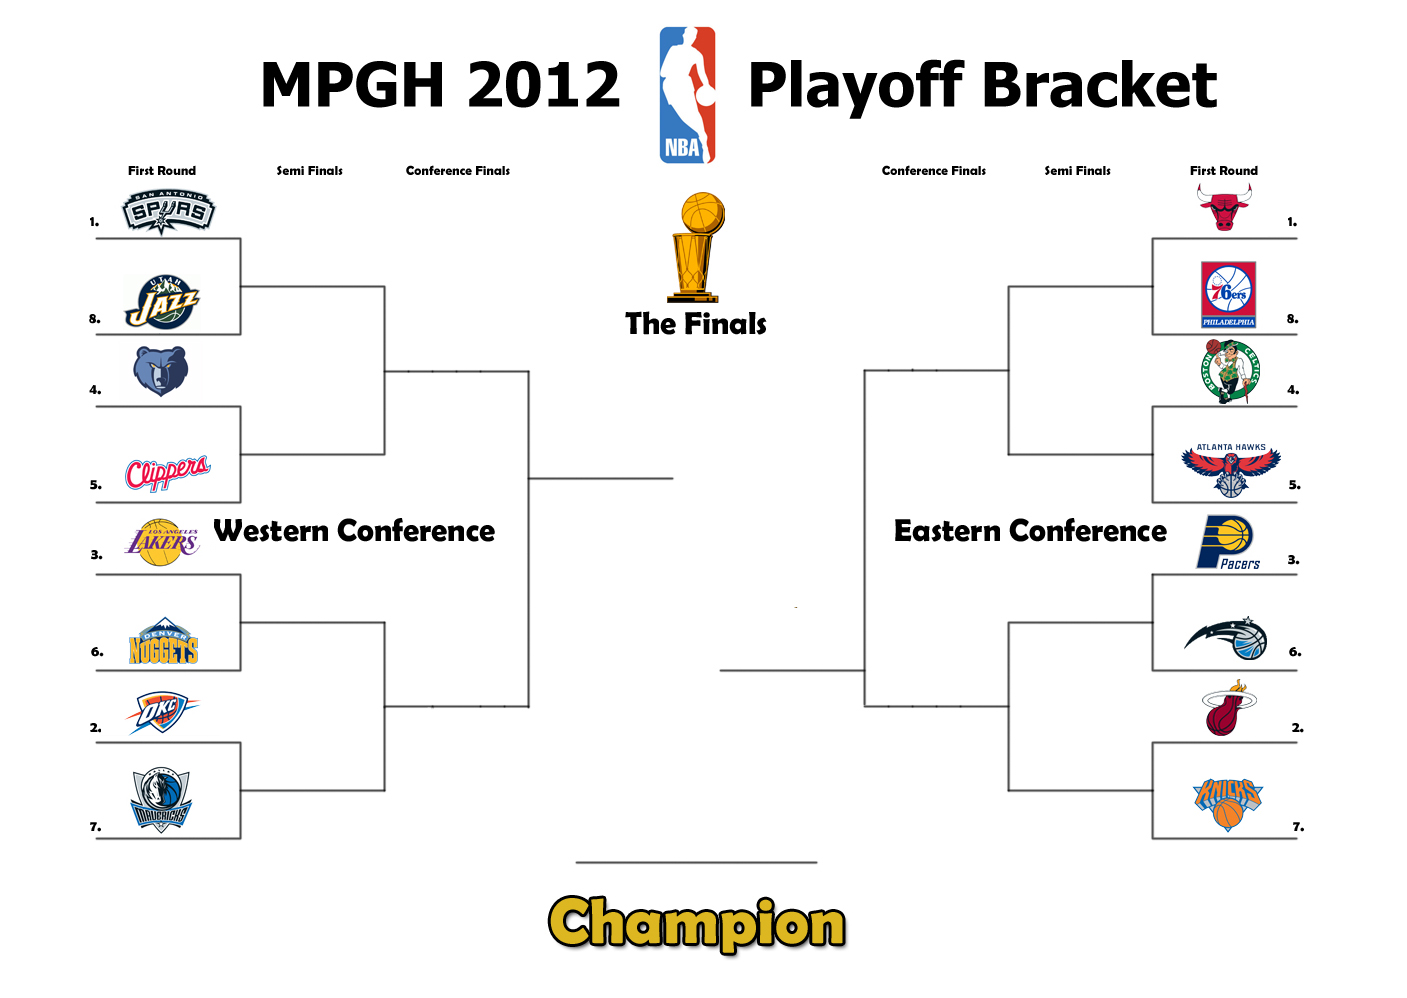 NBA Playoffs Bracket - MPGH - MultiPlayer Game Hacking & Cheats